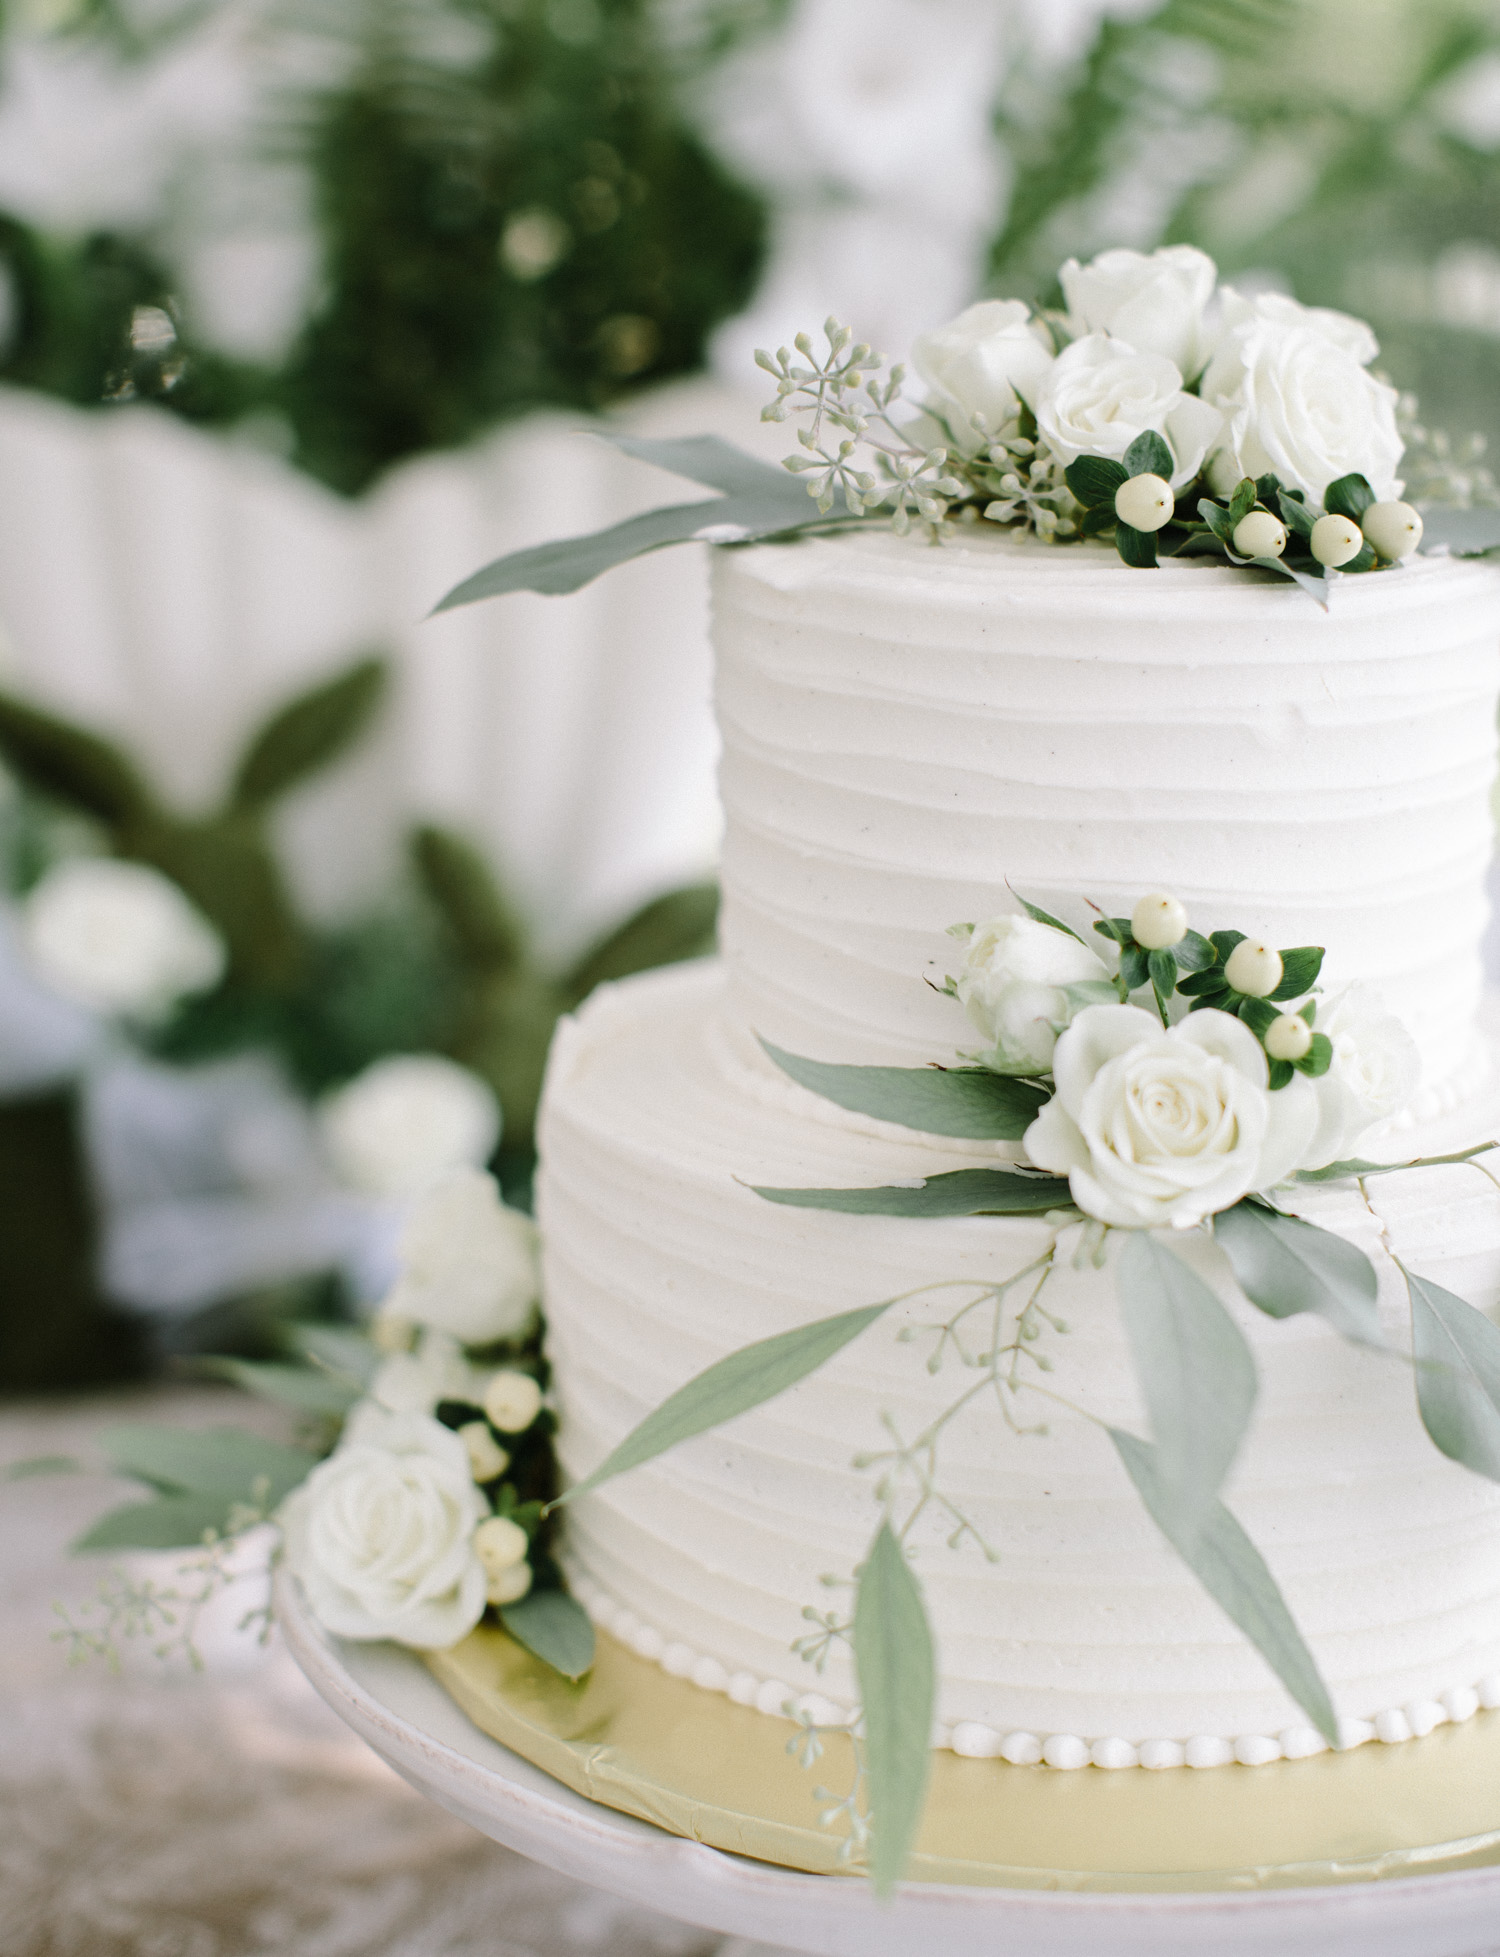 a vanilla bean wedding cake with flowers and greenery in Petoskey, Michigan